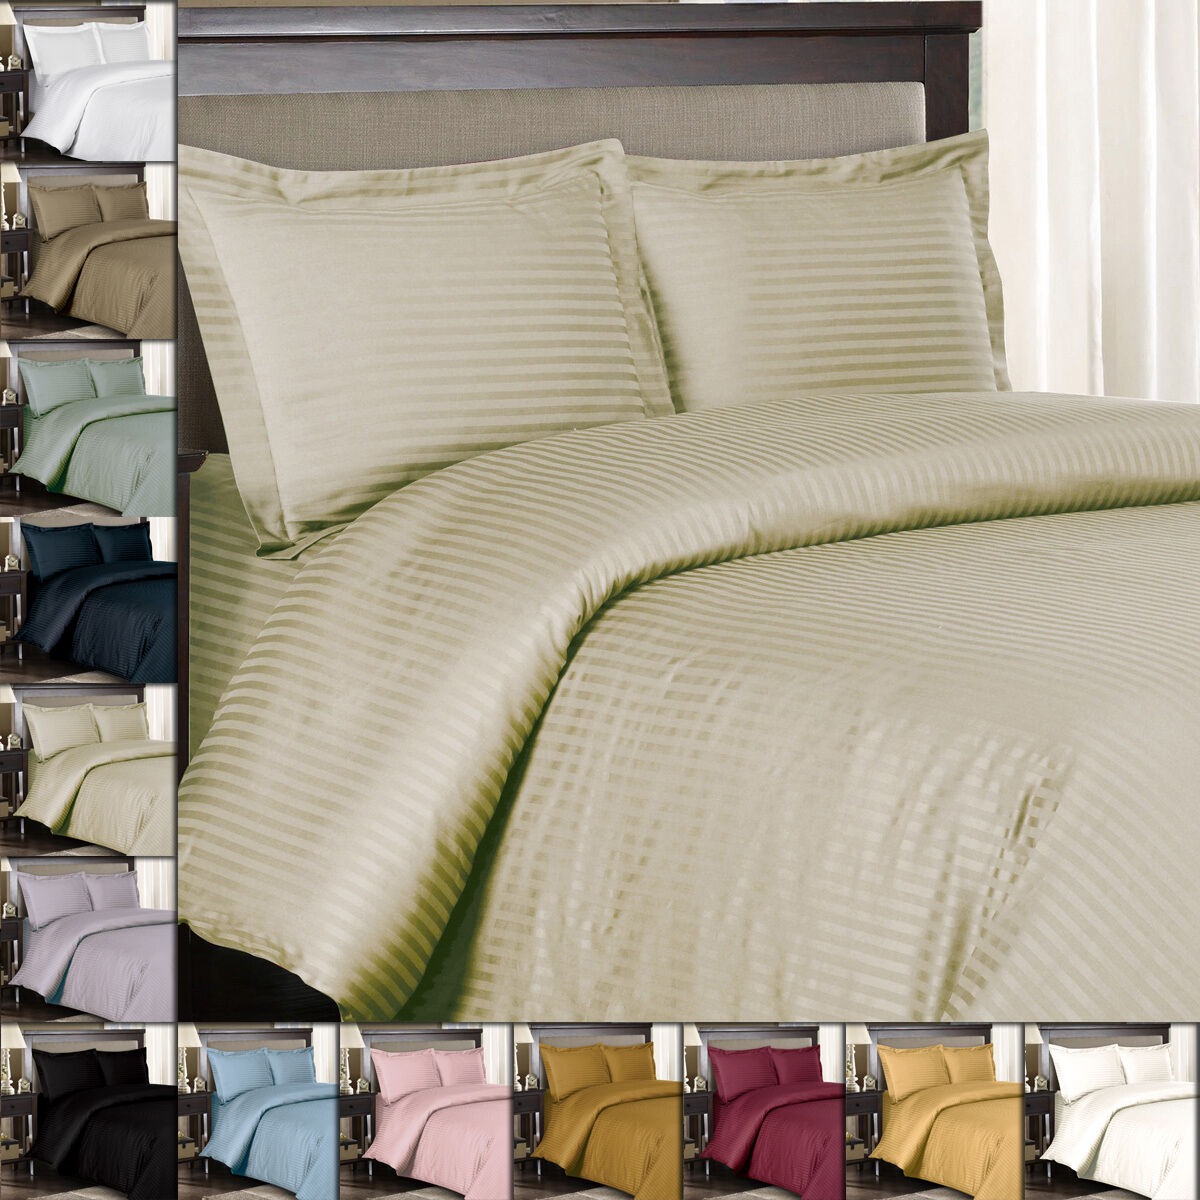 King Calking 100% Cotton 300 Thread Count Striped Sateen Weave Duvet Cover Sets